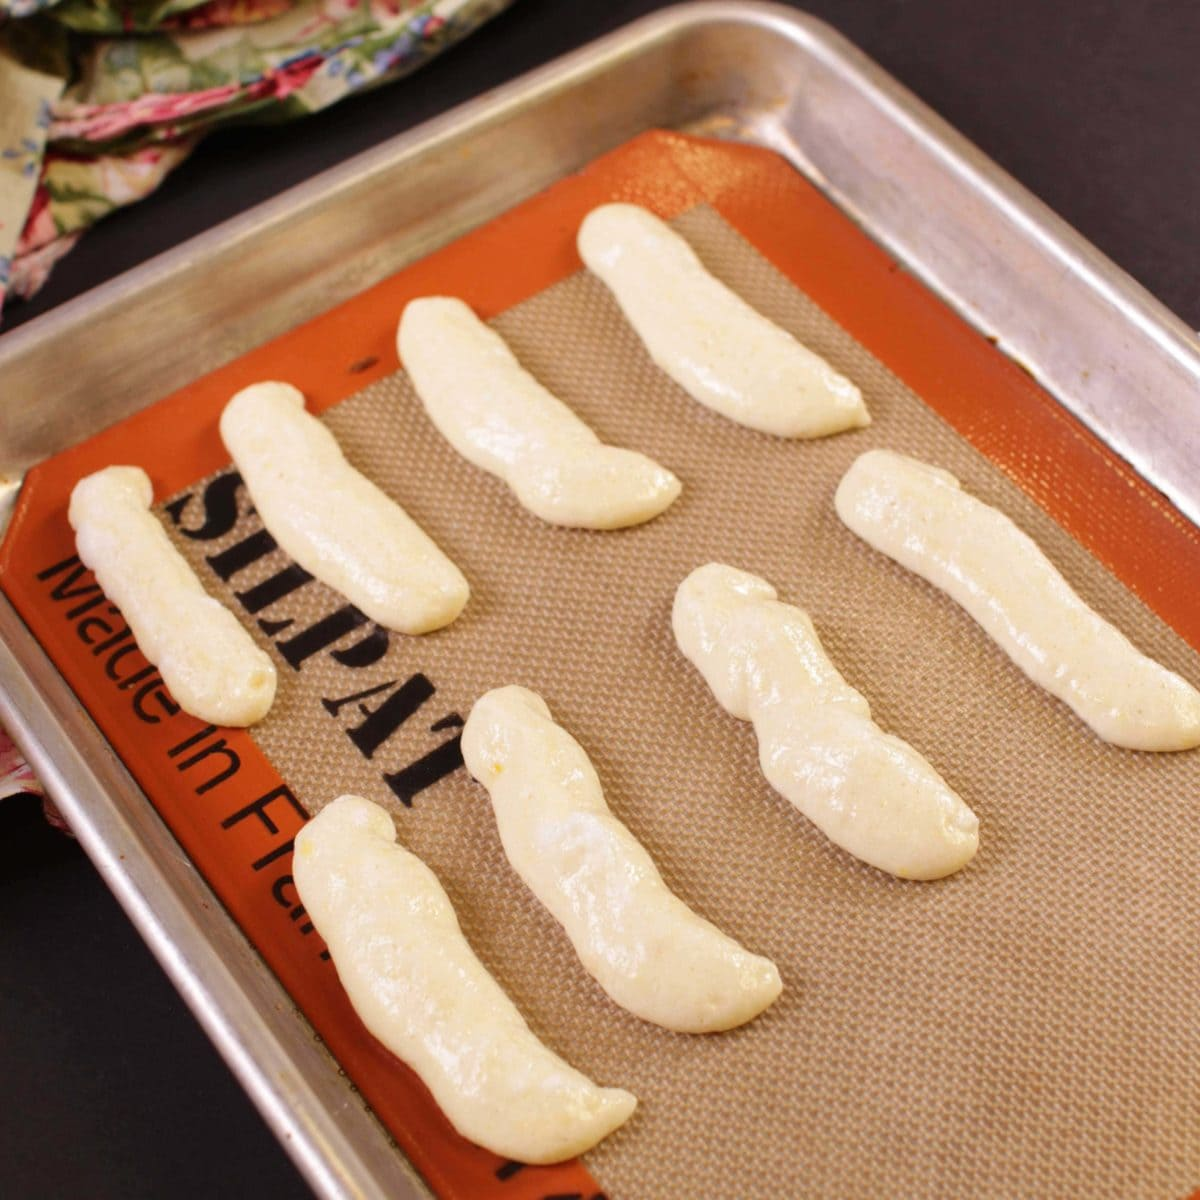 ladyfinger batter piped onto a small cookie sheet.